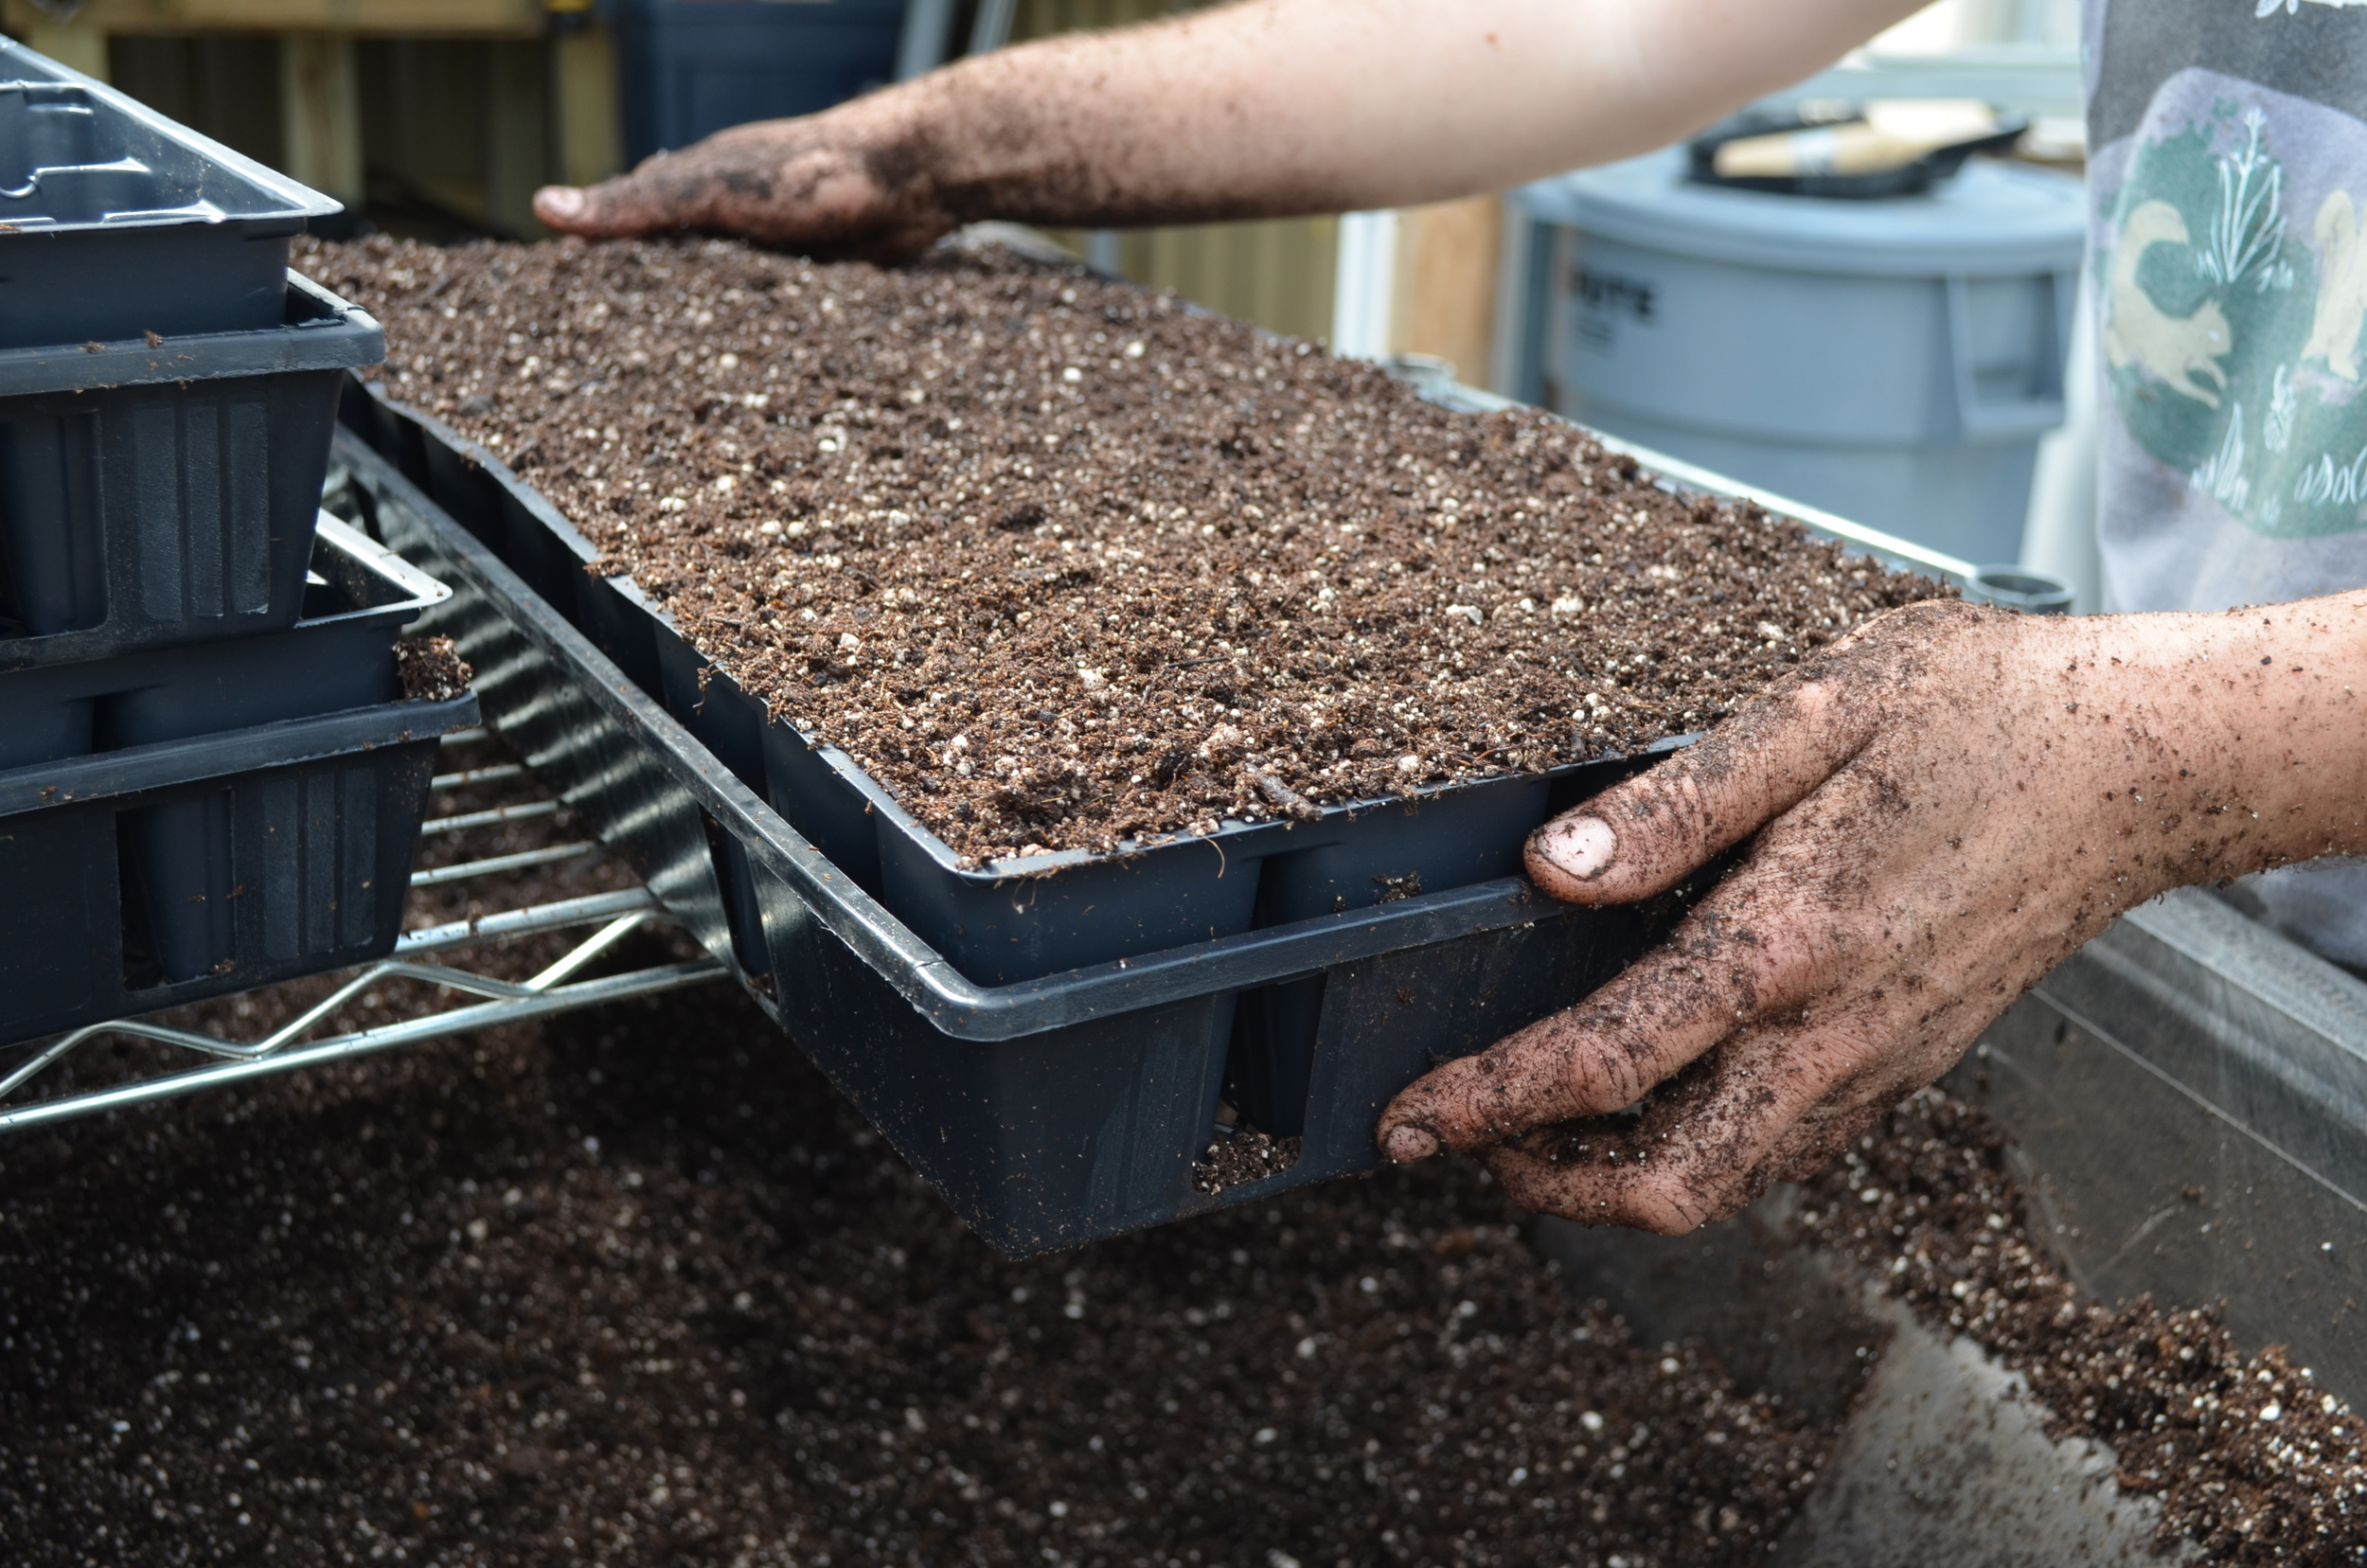 Amy prepares soil for Bean Sowing